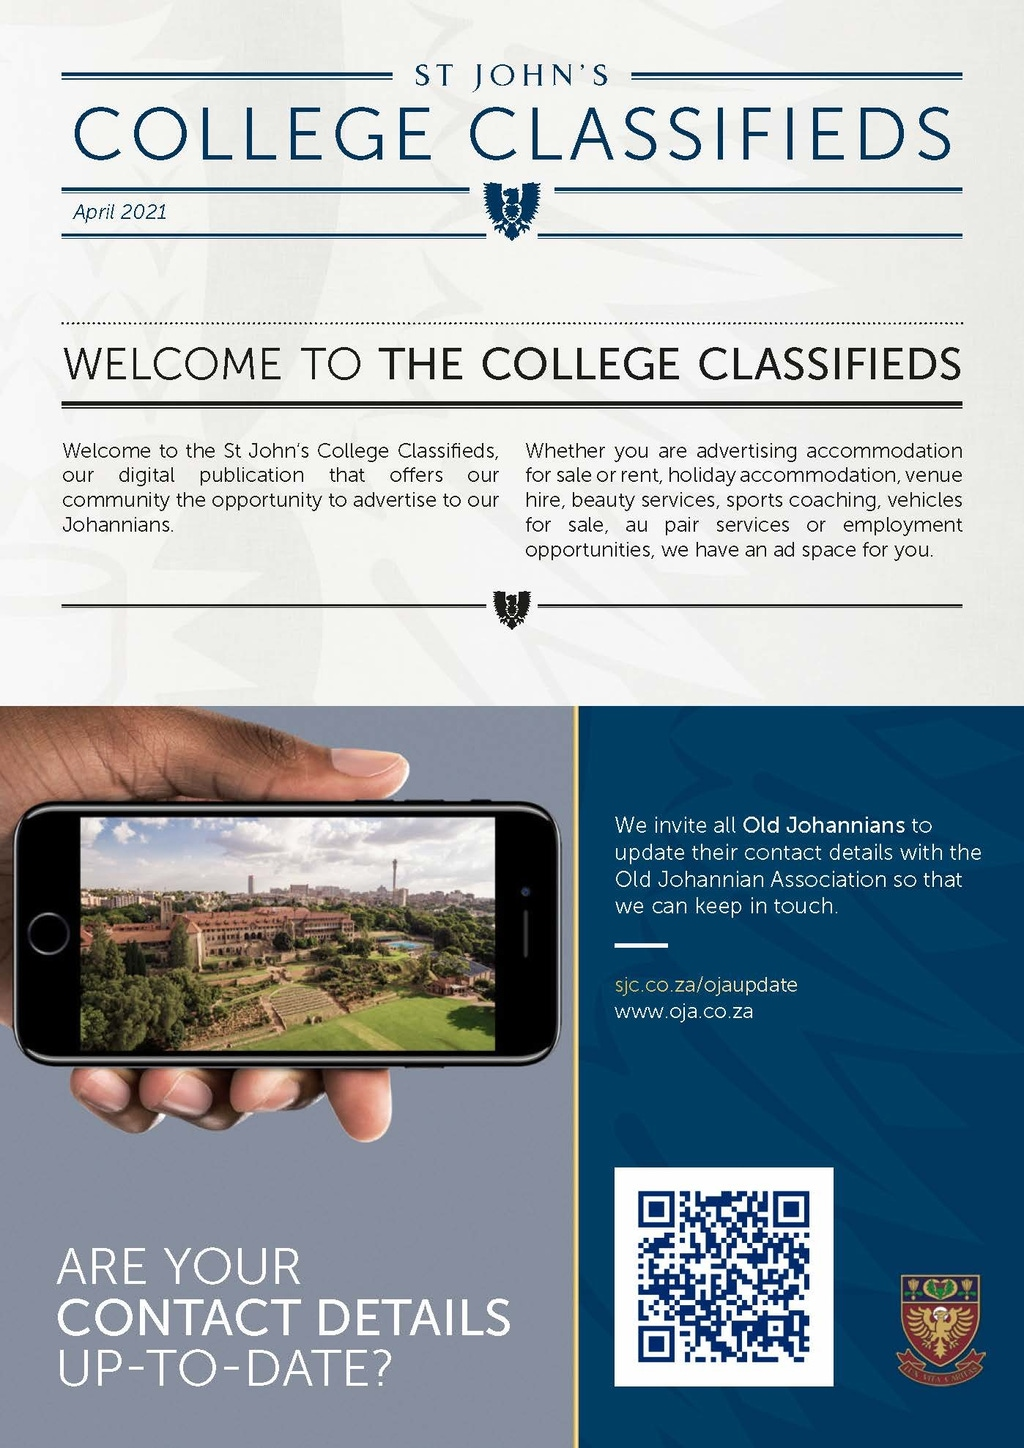 College Classifieds Apr 2021 Page 1